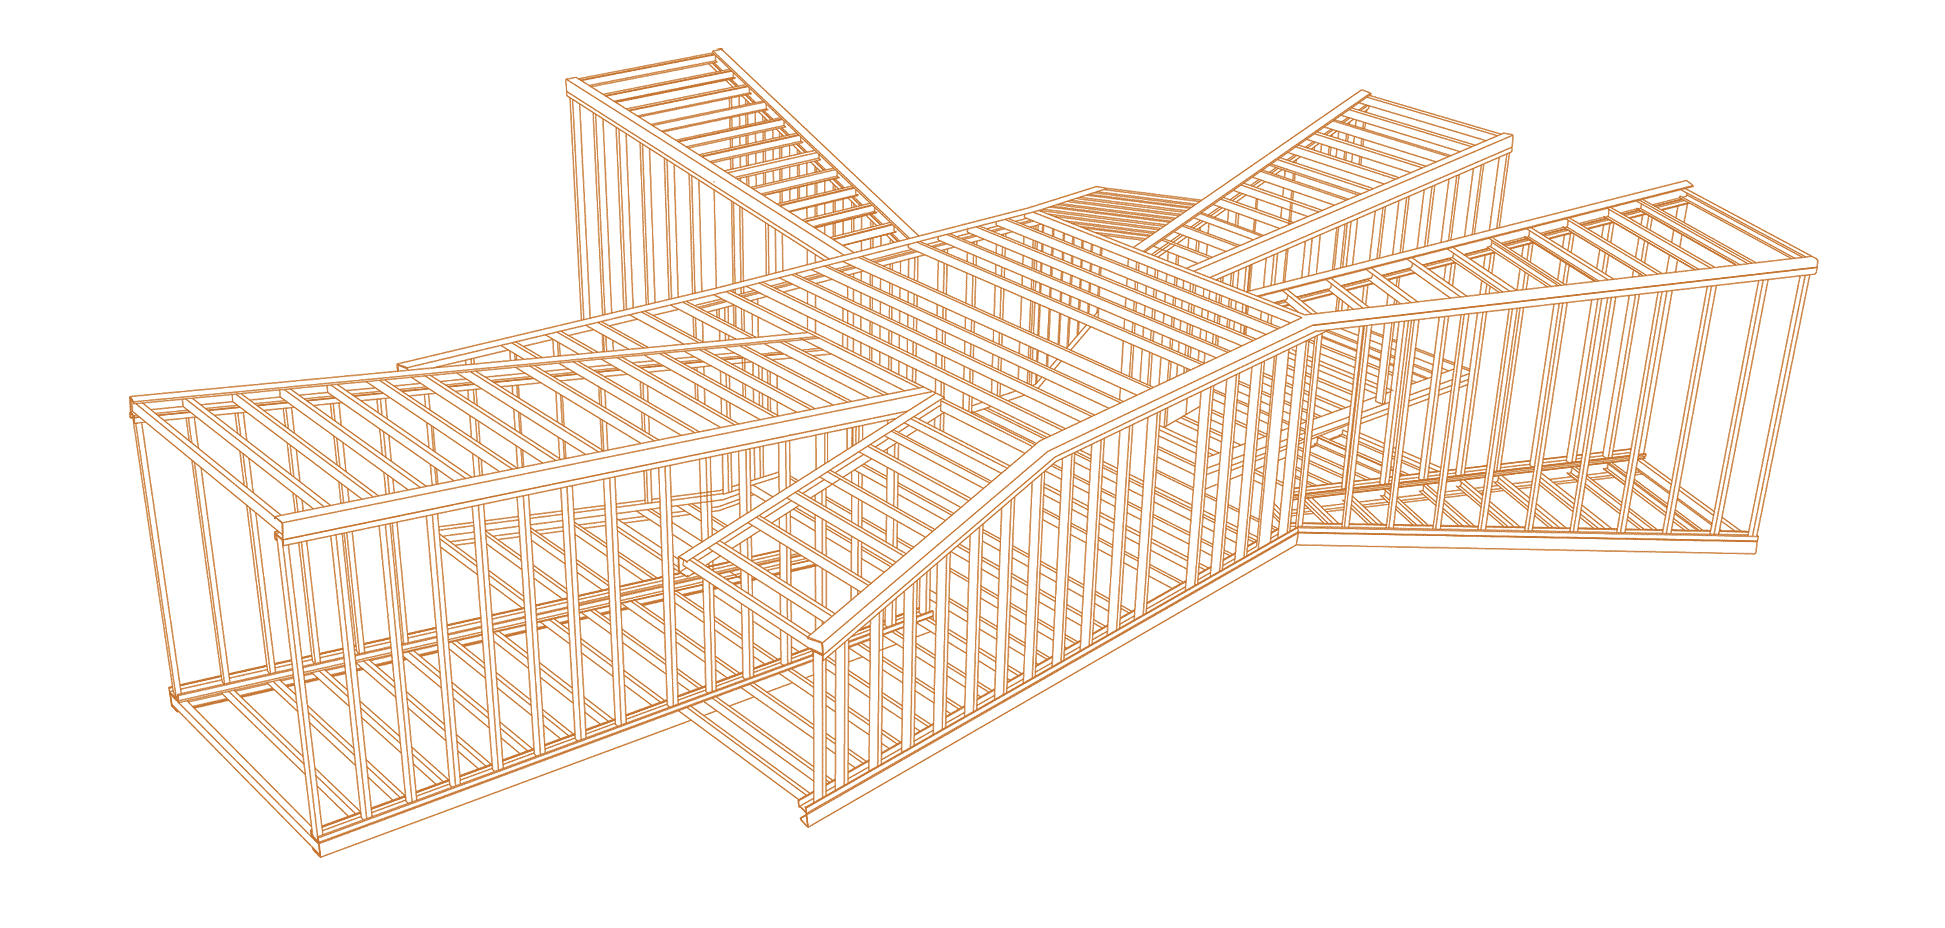 A computer render of the structure of the Shelter for Pilgrims